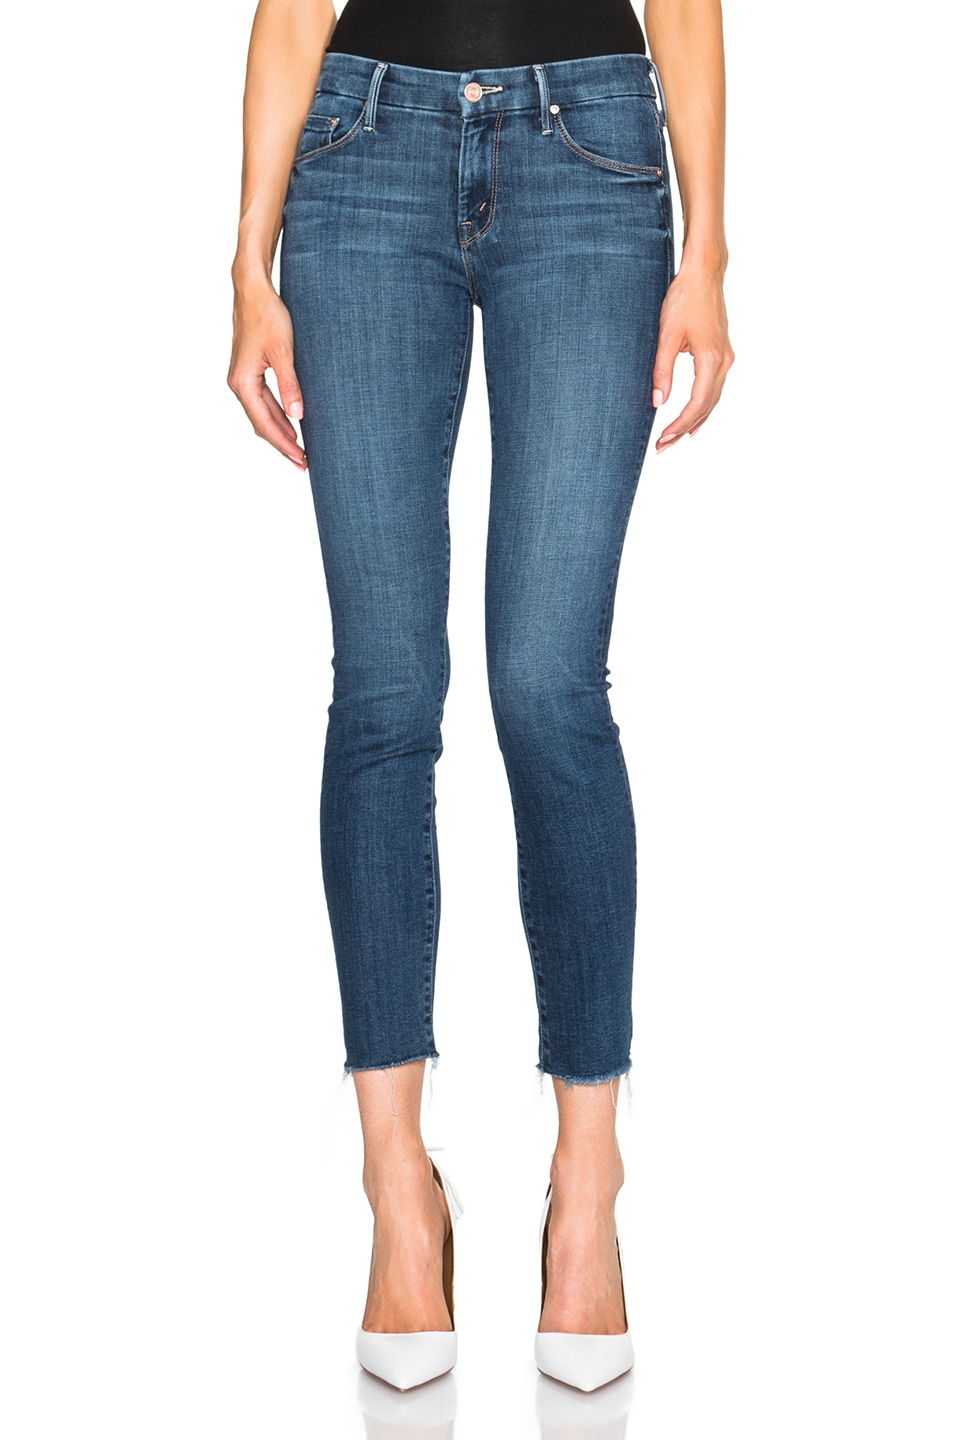 The Stunner High Rise Ankle Fray Jeans (Moon Dark) in Blue